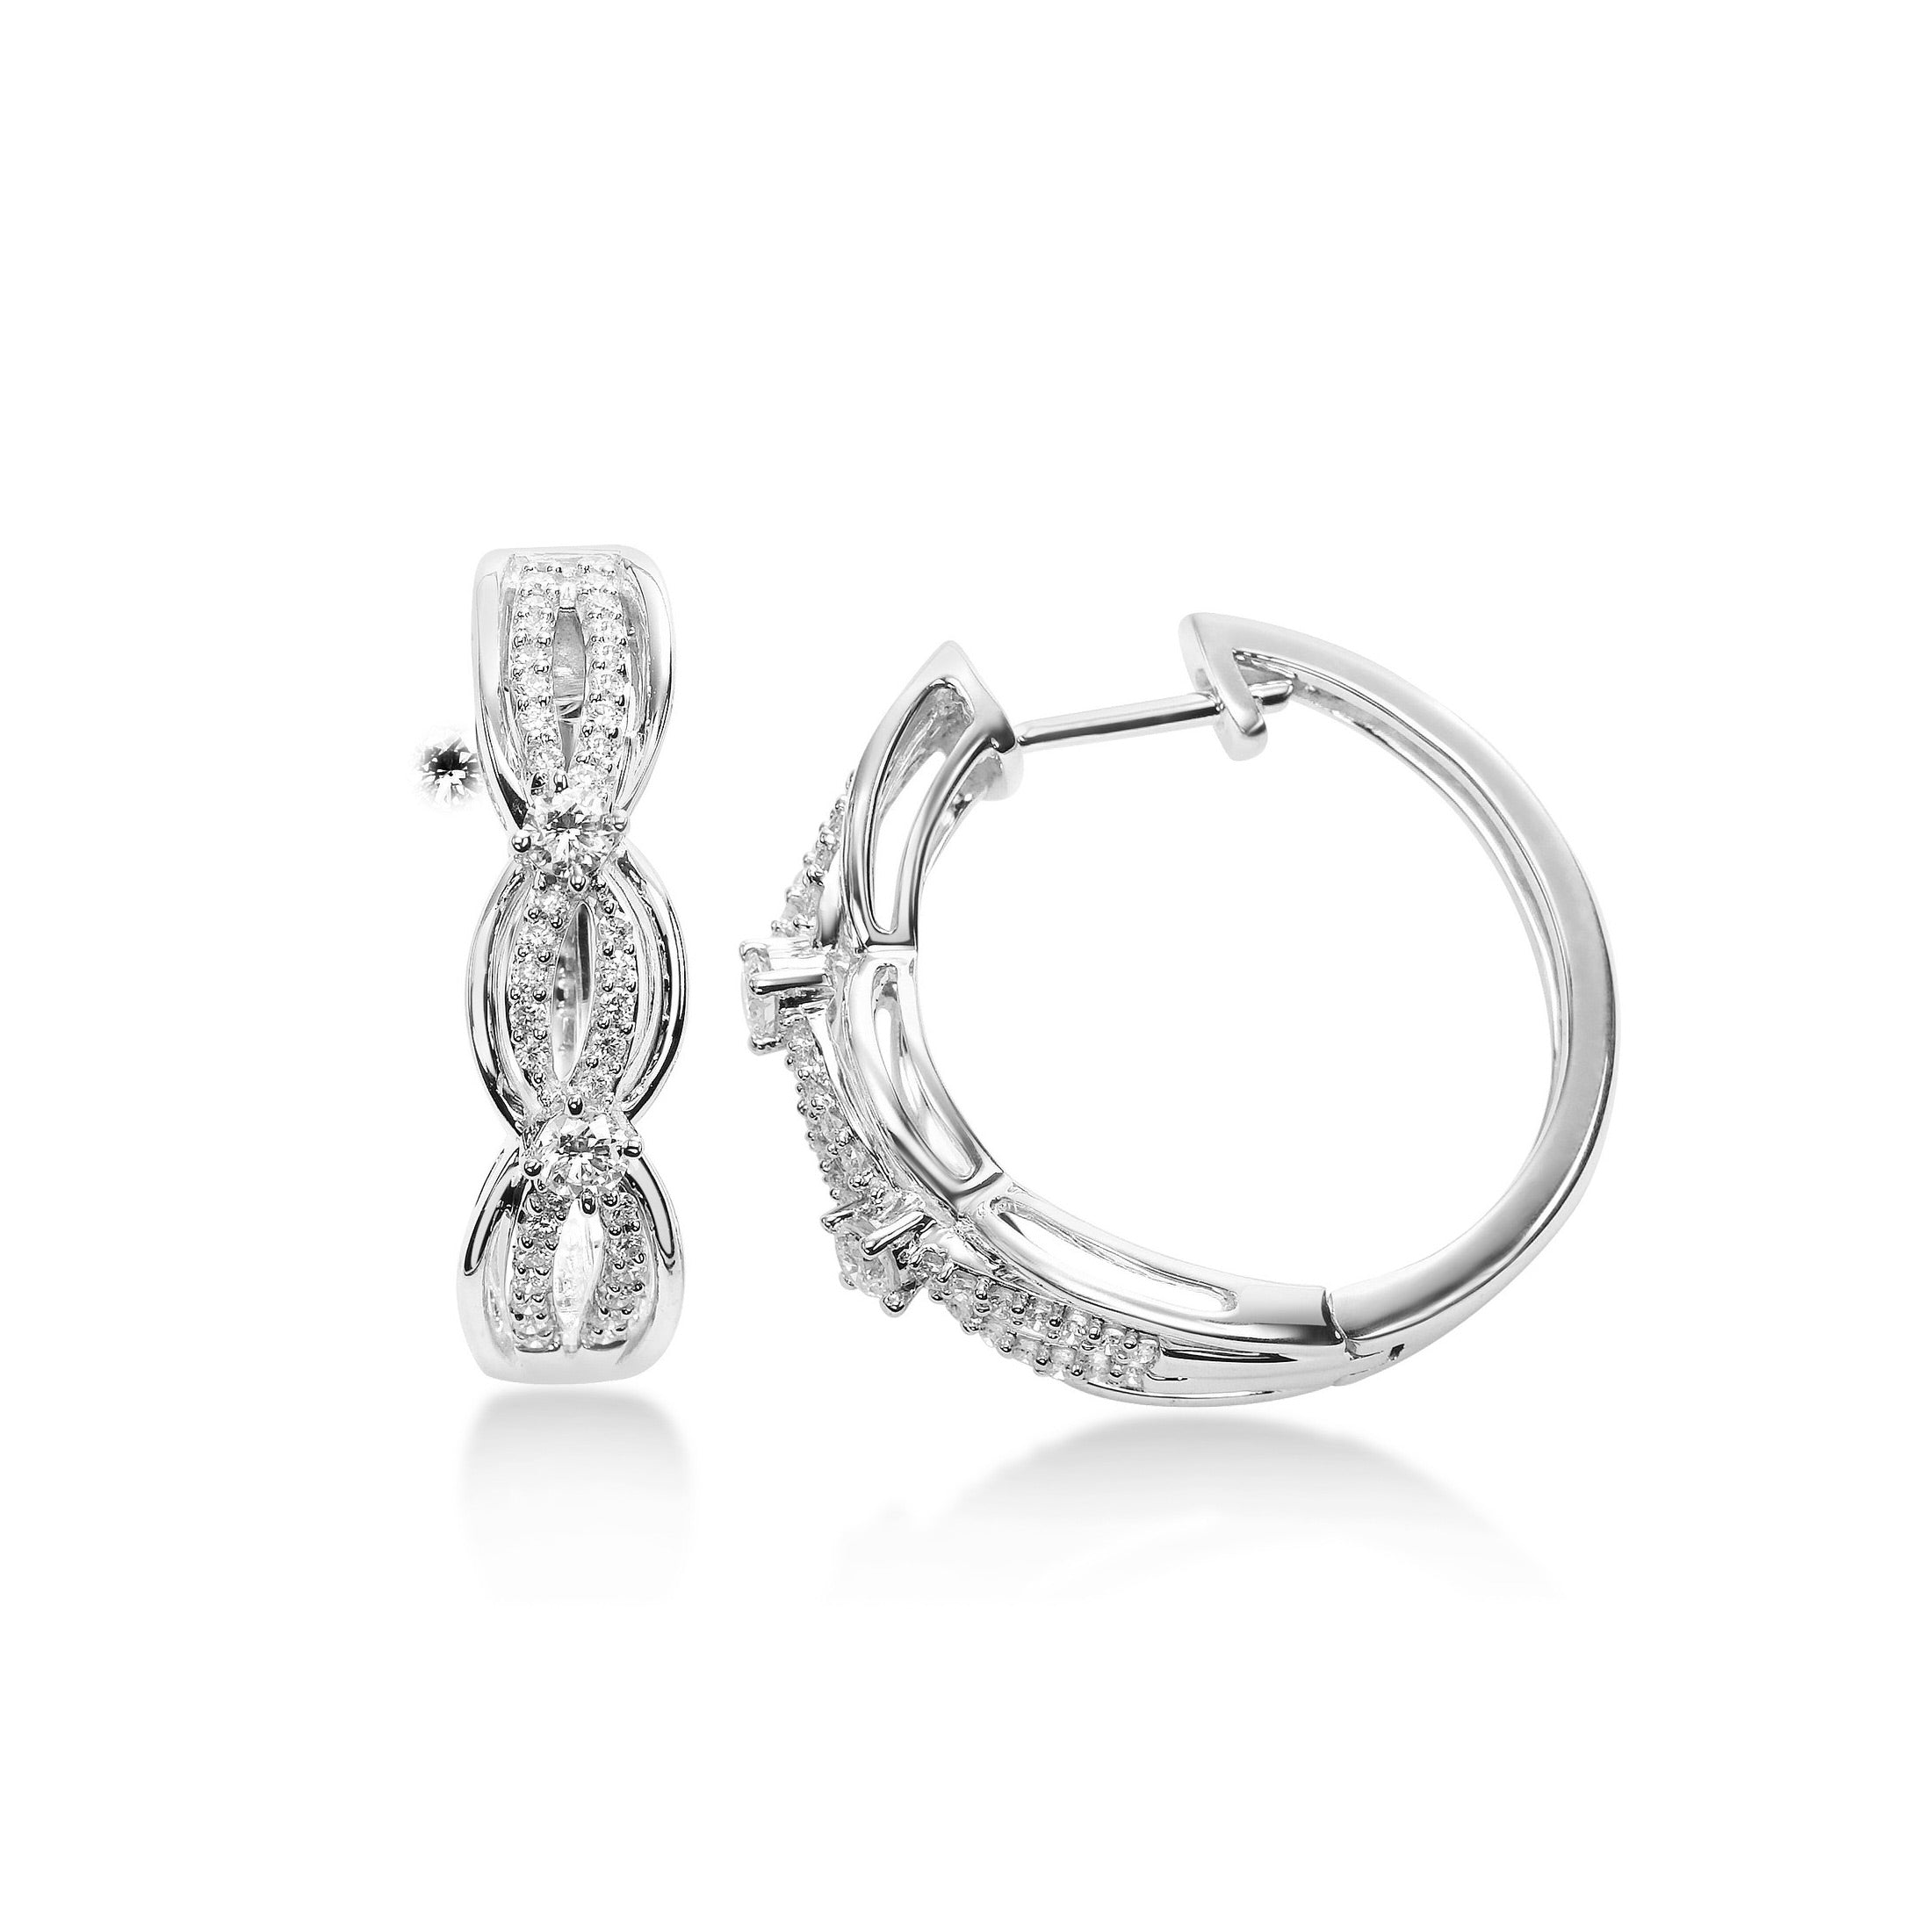 Criss Crossing Diamond Hoop Earrings, 14K White Gold